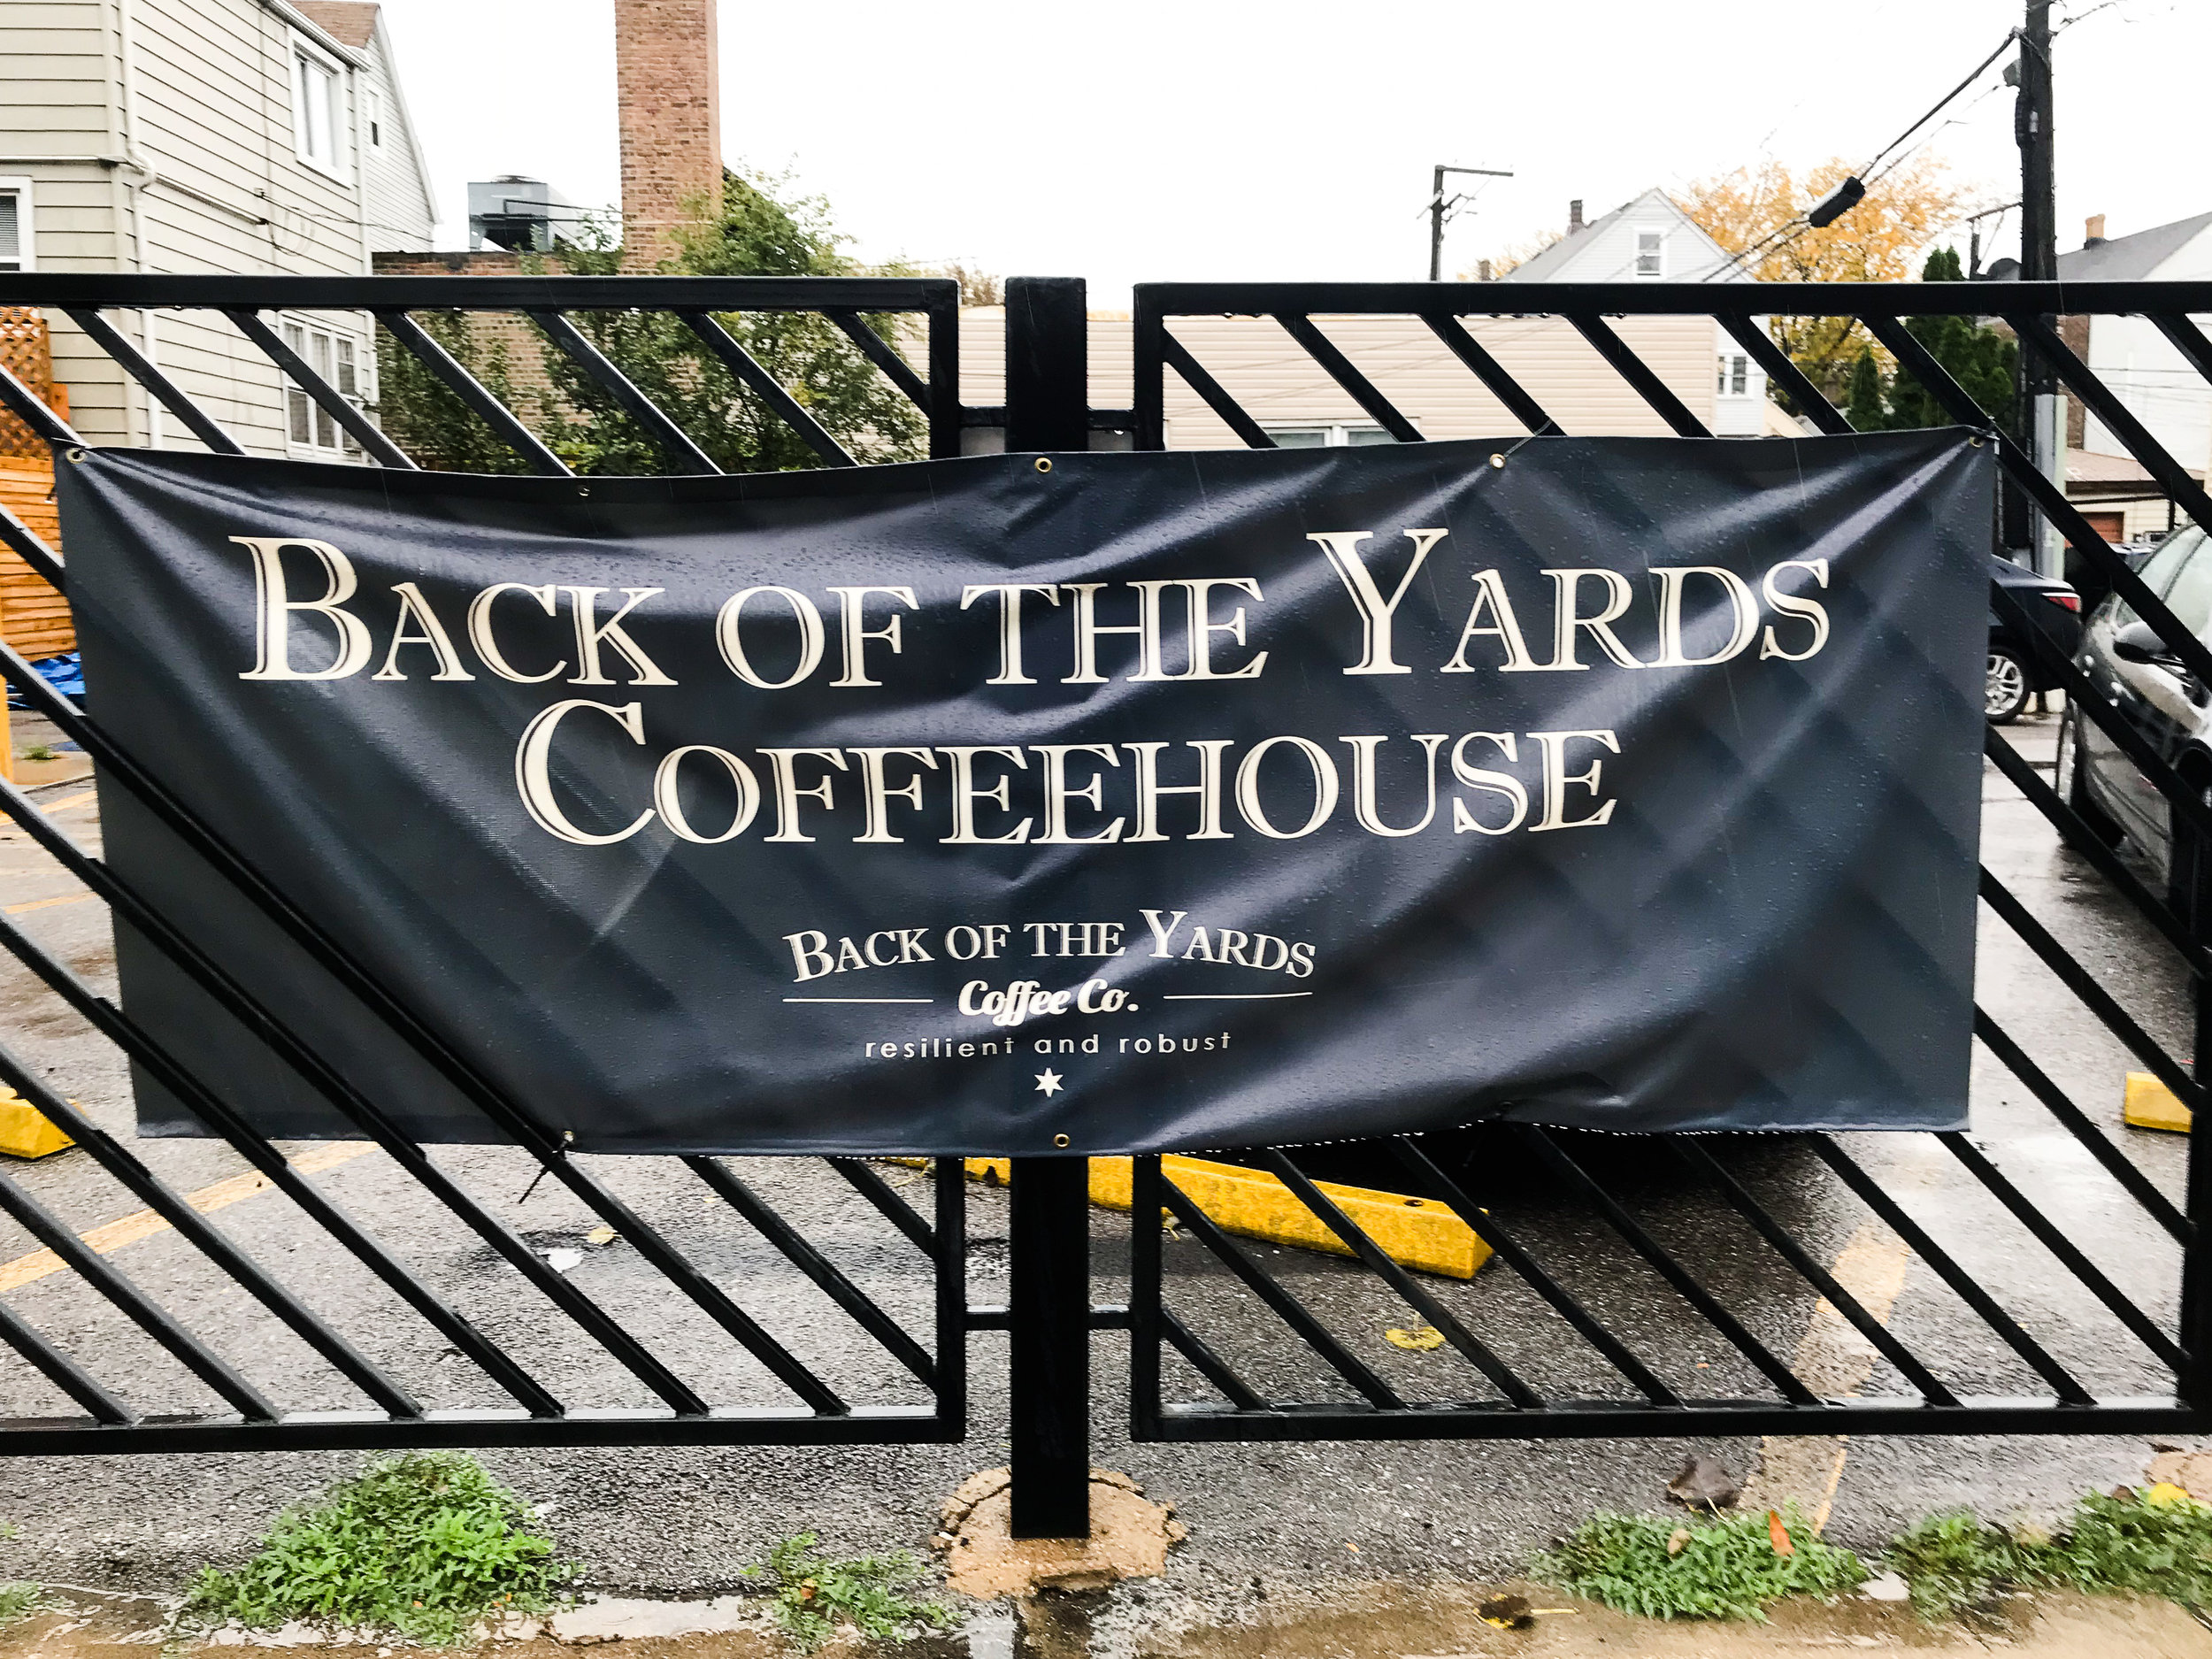 BackoftheYardsCoffeehouse-9.jpg